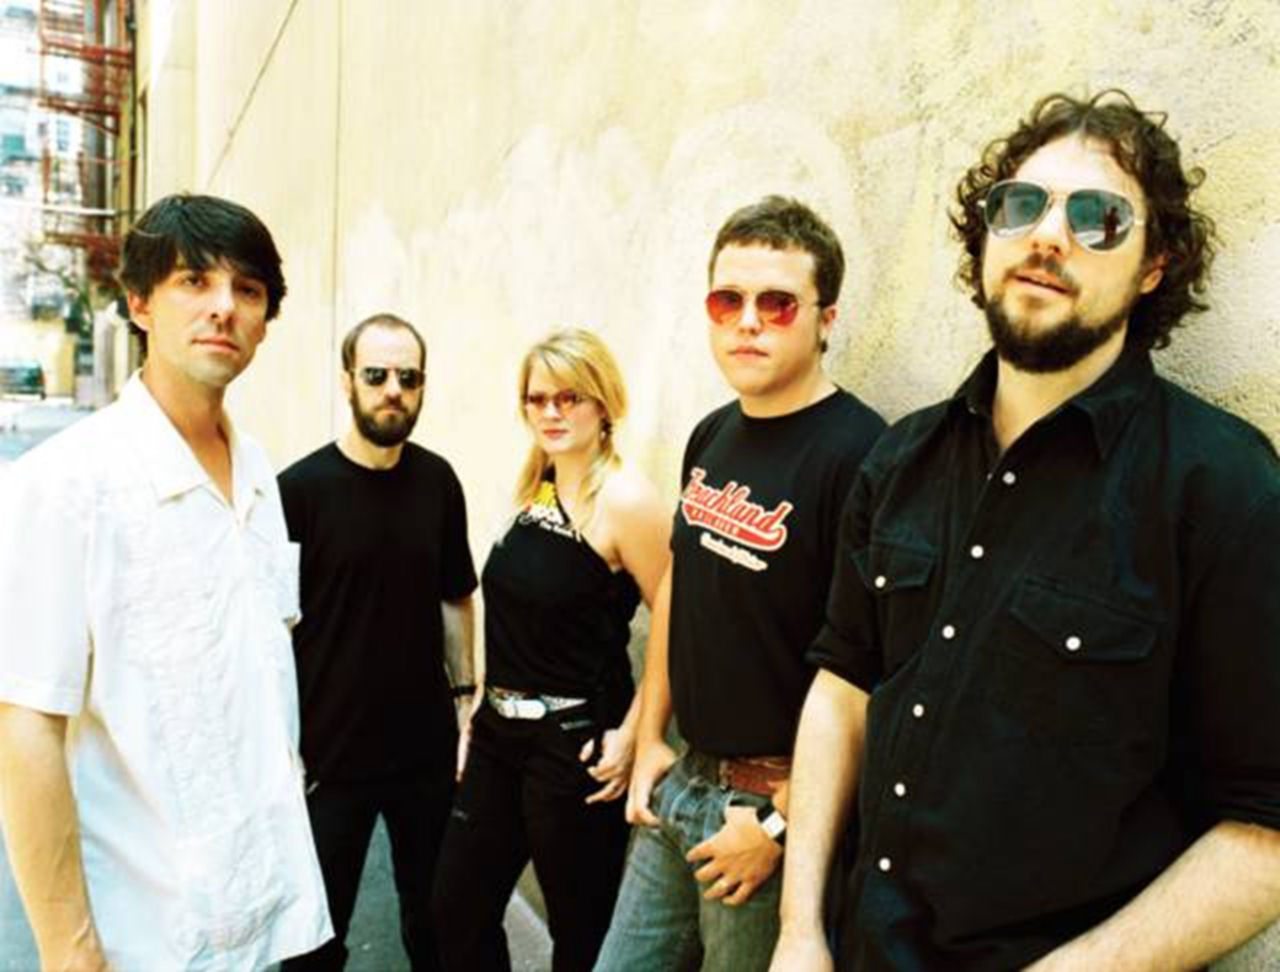 Plaat van de week: Drive-By Truckers – Marry Me